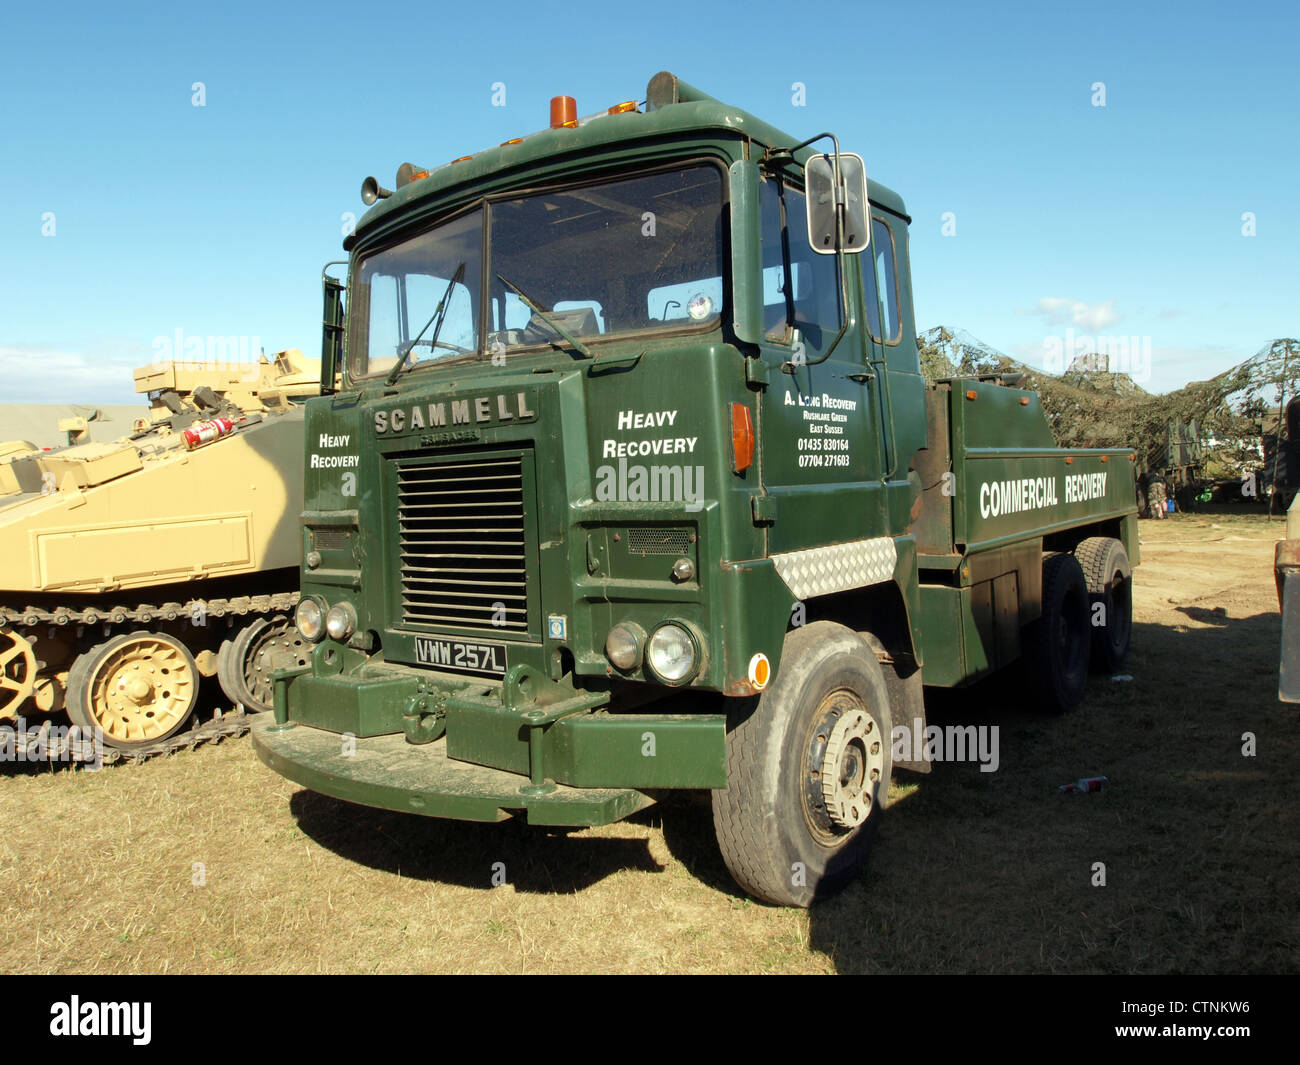 Scammell Crusader, Heavy Recovery - Stock Image